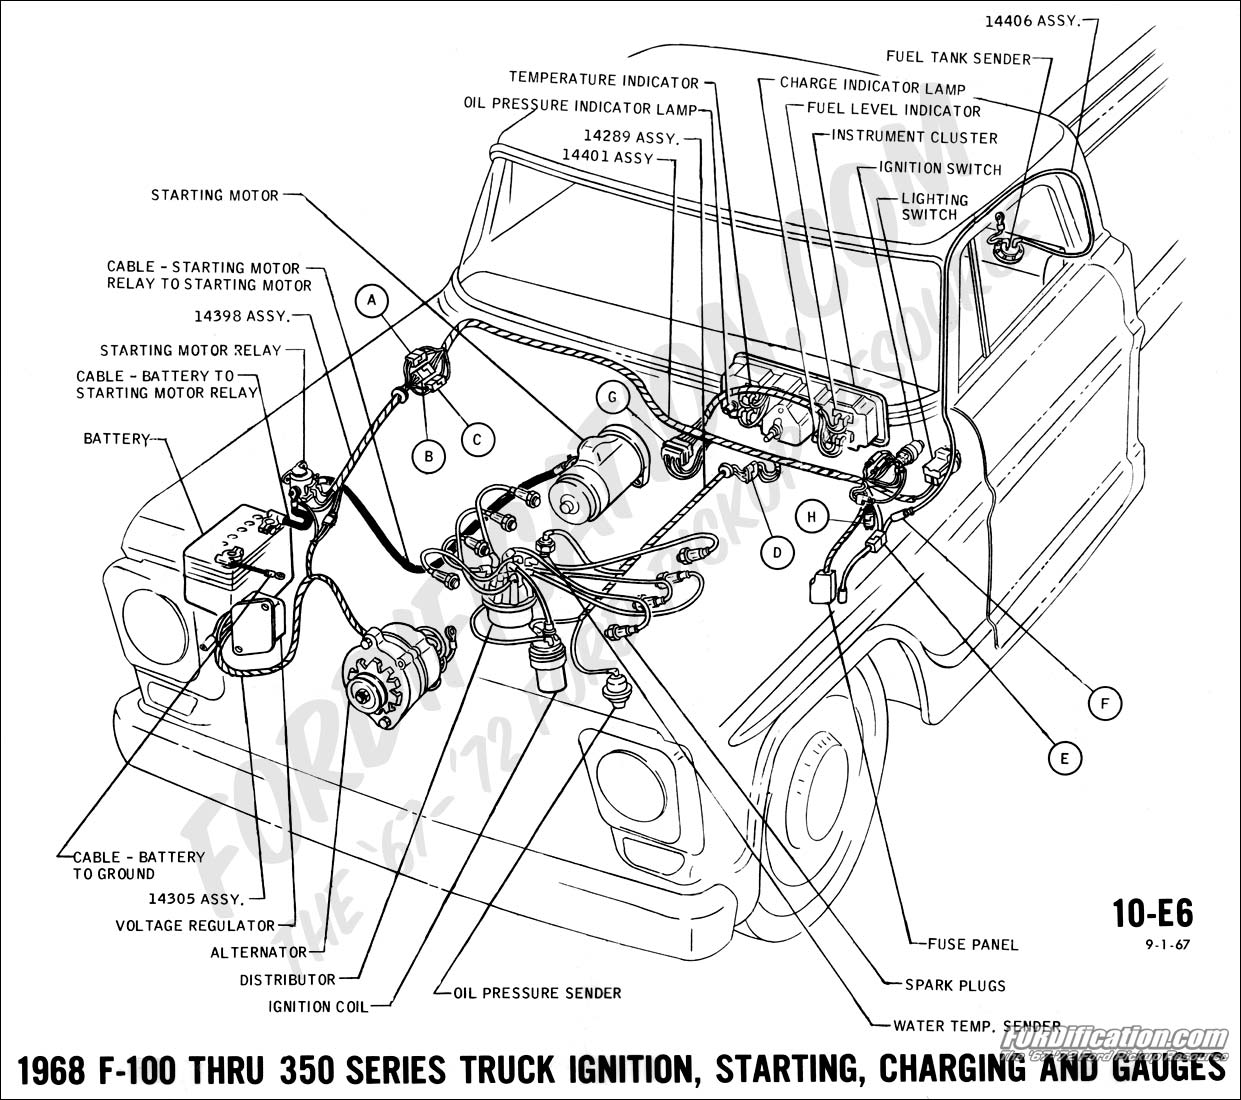 2004 Ford F250 Wiring Schematics Manual Of Diagram Truck Technical Drawings And Section H Online